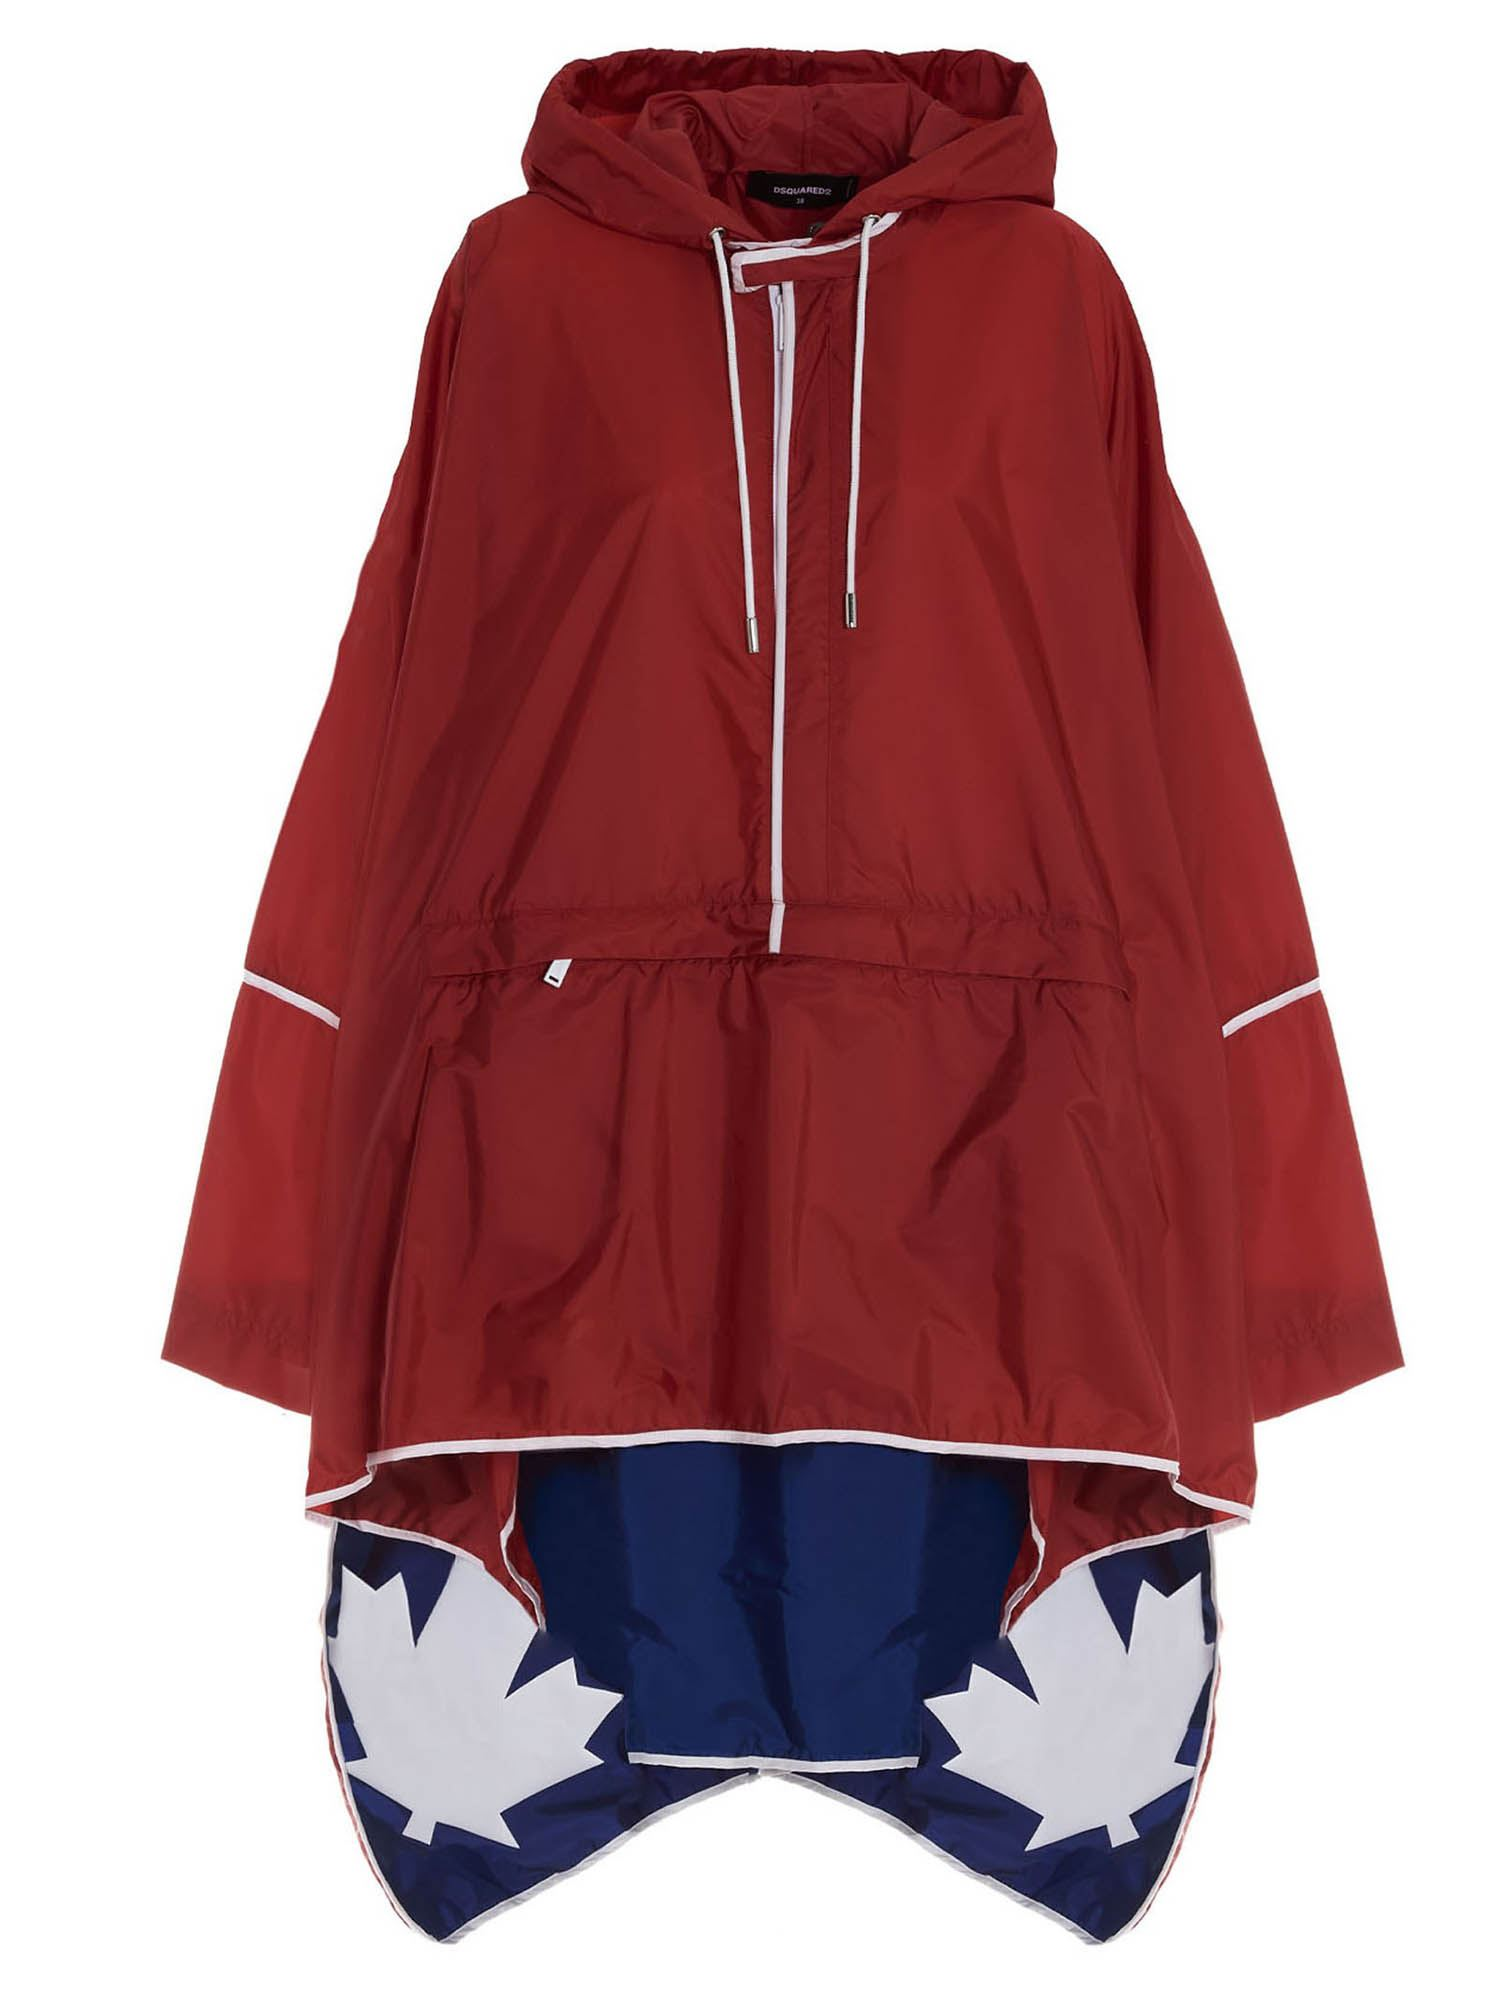 Dsquared2 Clothing LOGO ANORAK IN RED AND BLU